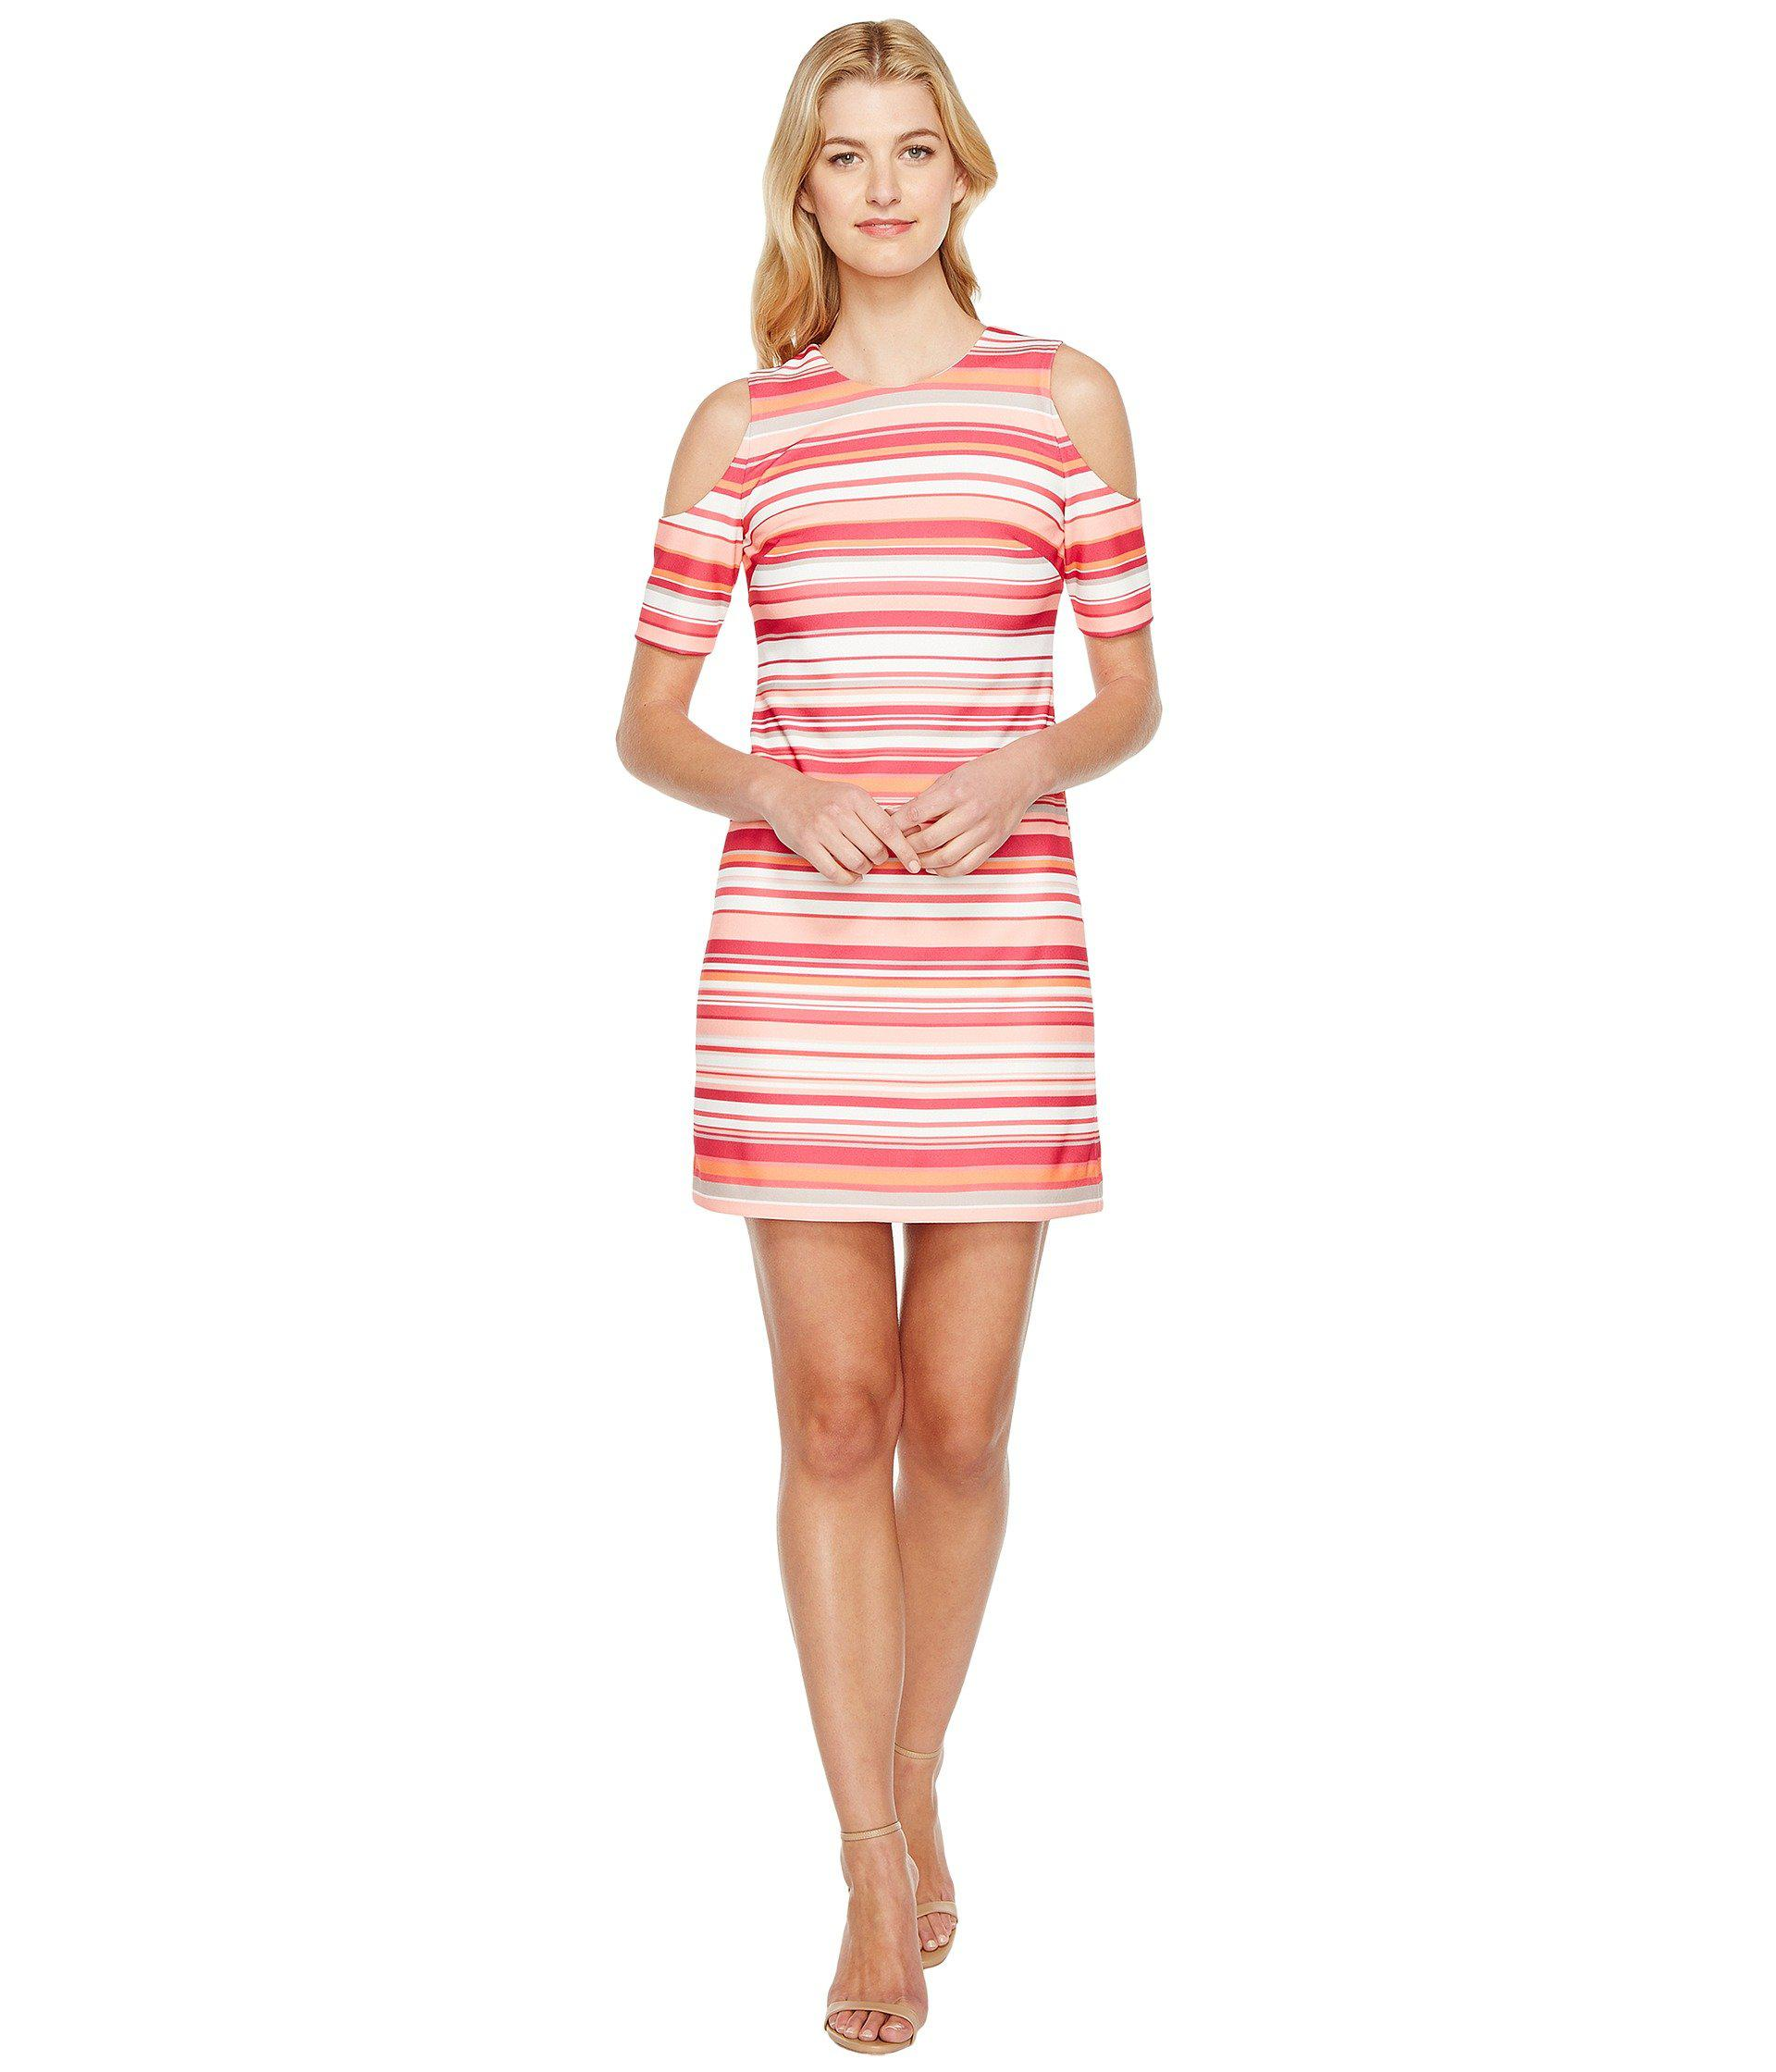 049c0c9cad9d09 Lyst - Calvin Klein Cold Shoulder Stripe Dress in Pink - Save 58%